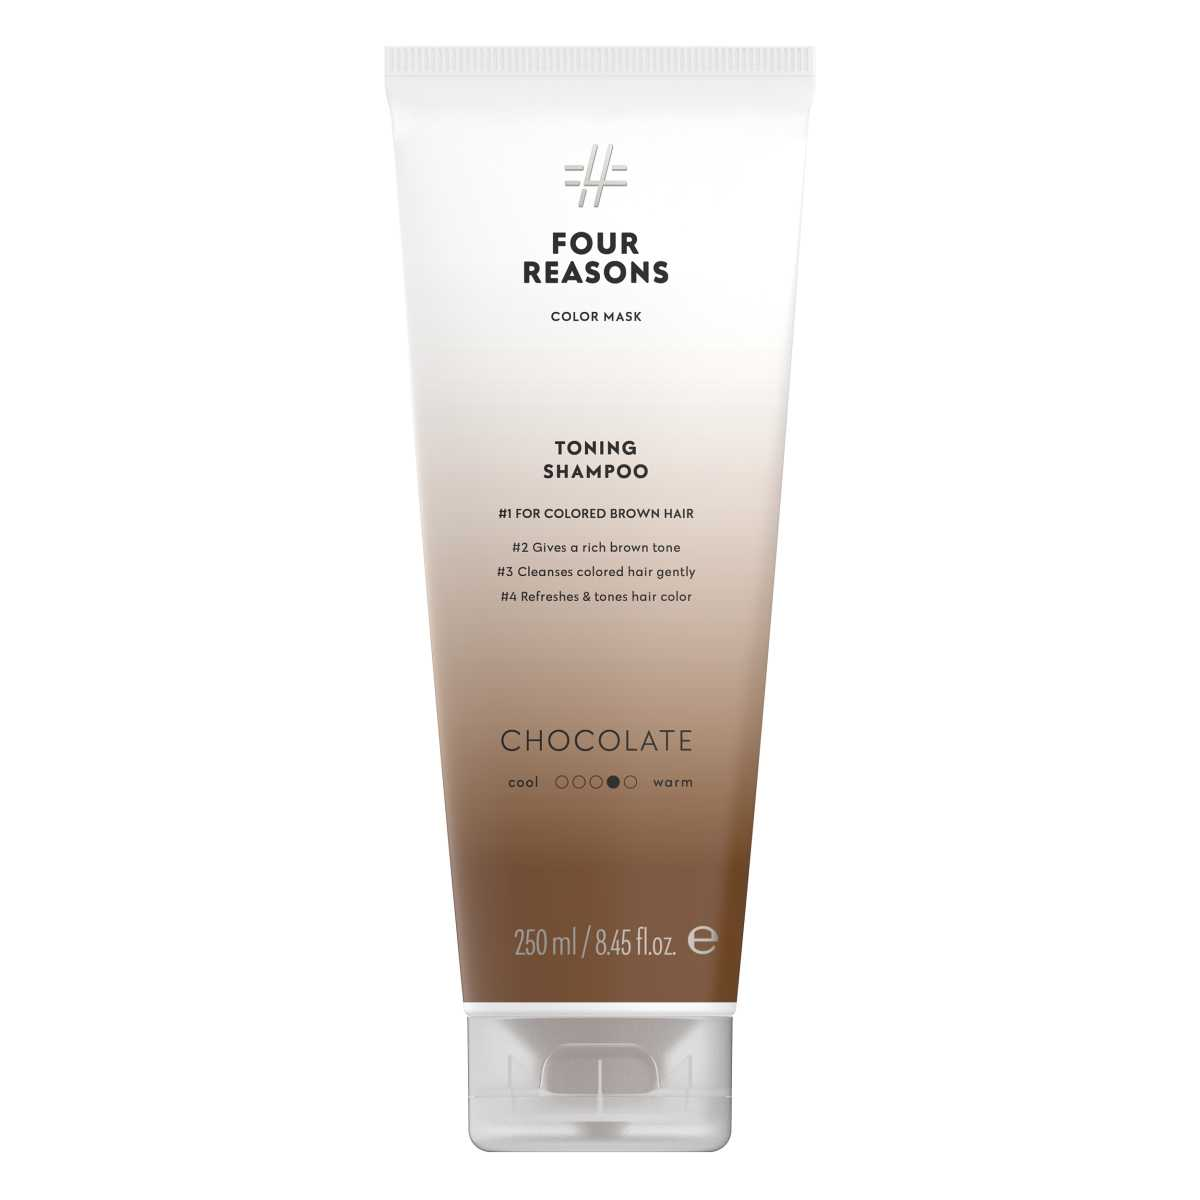 Four-Reasons-Color-Mask-Shampoo Chocolate